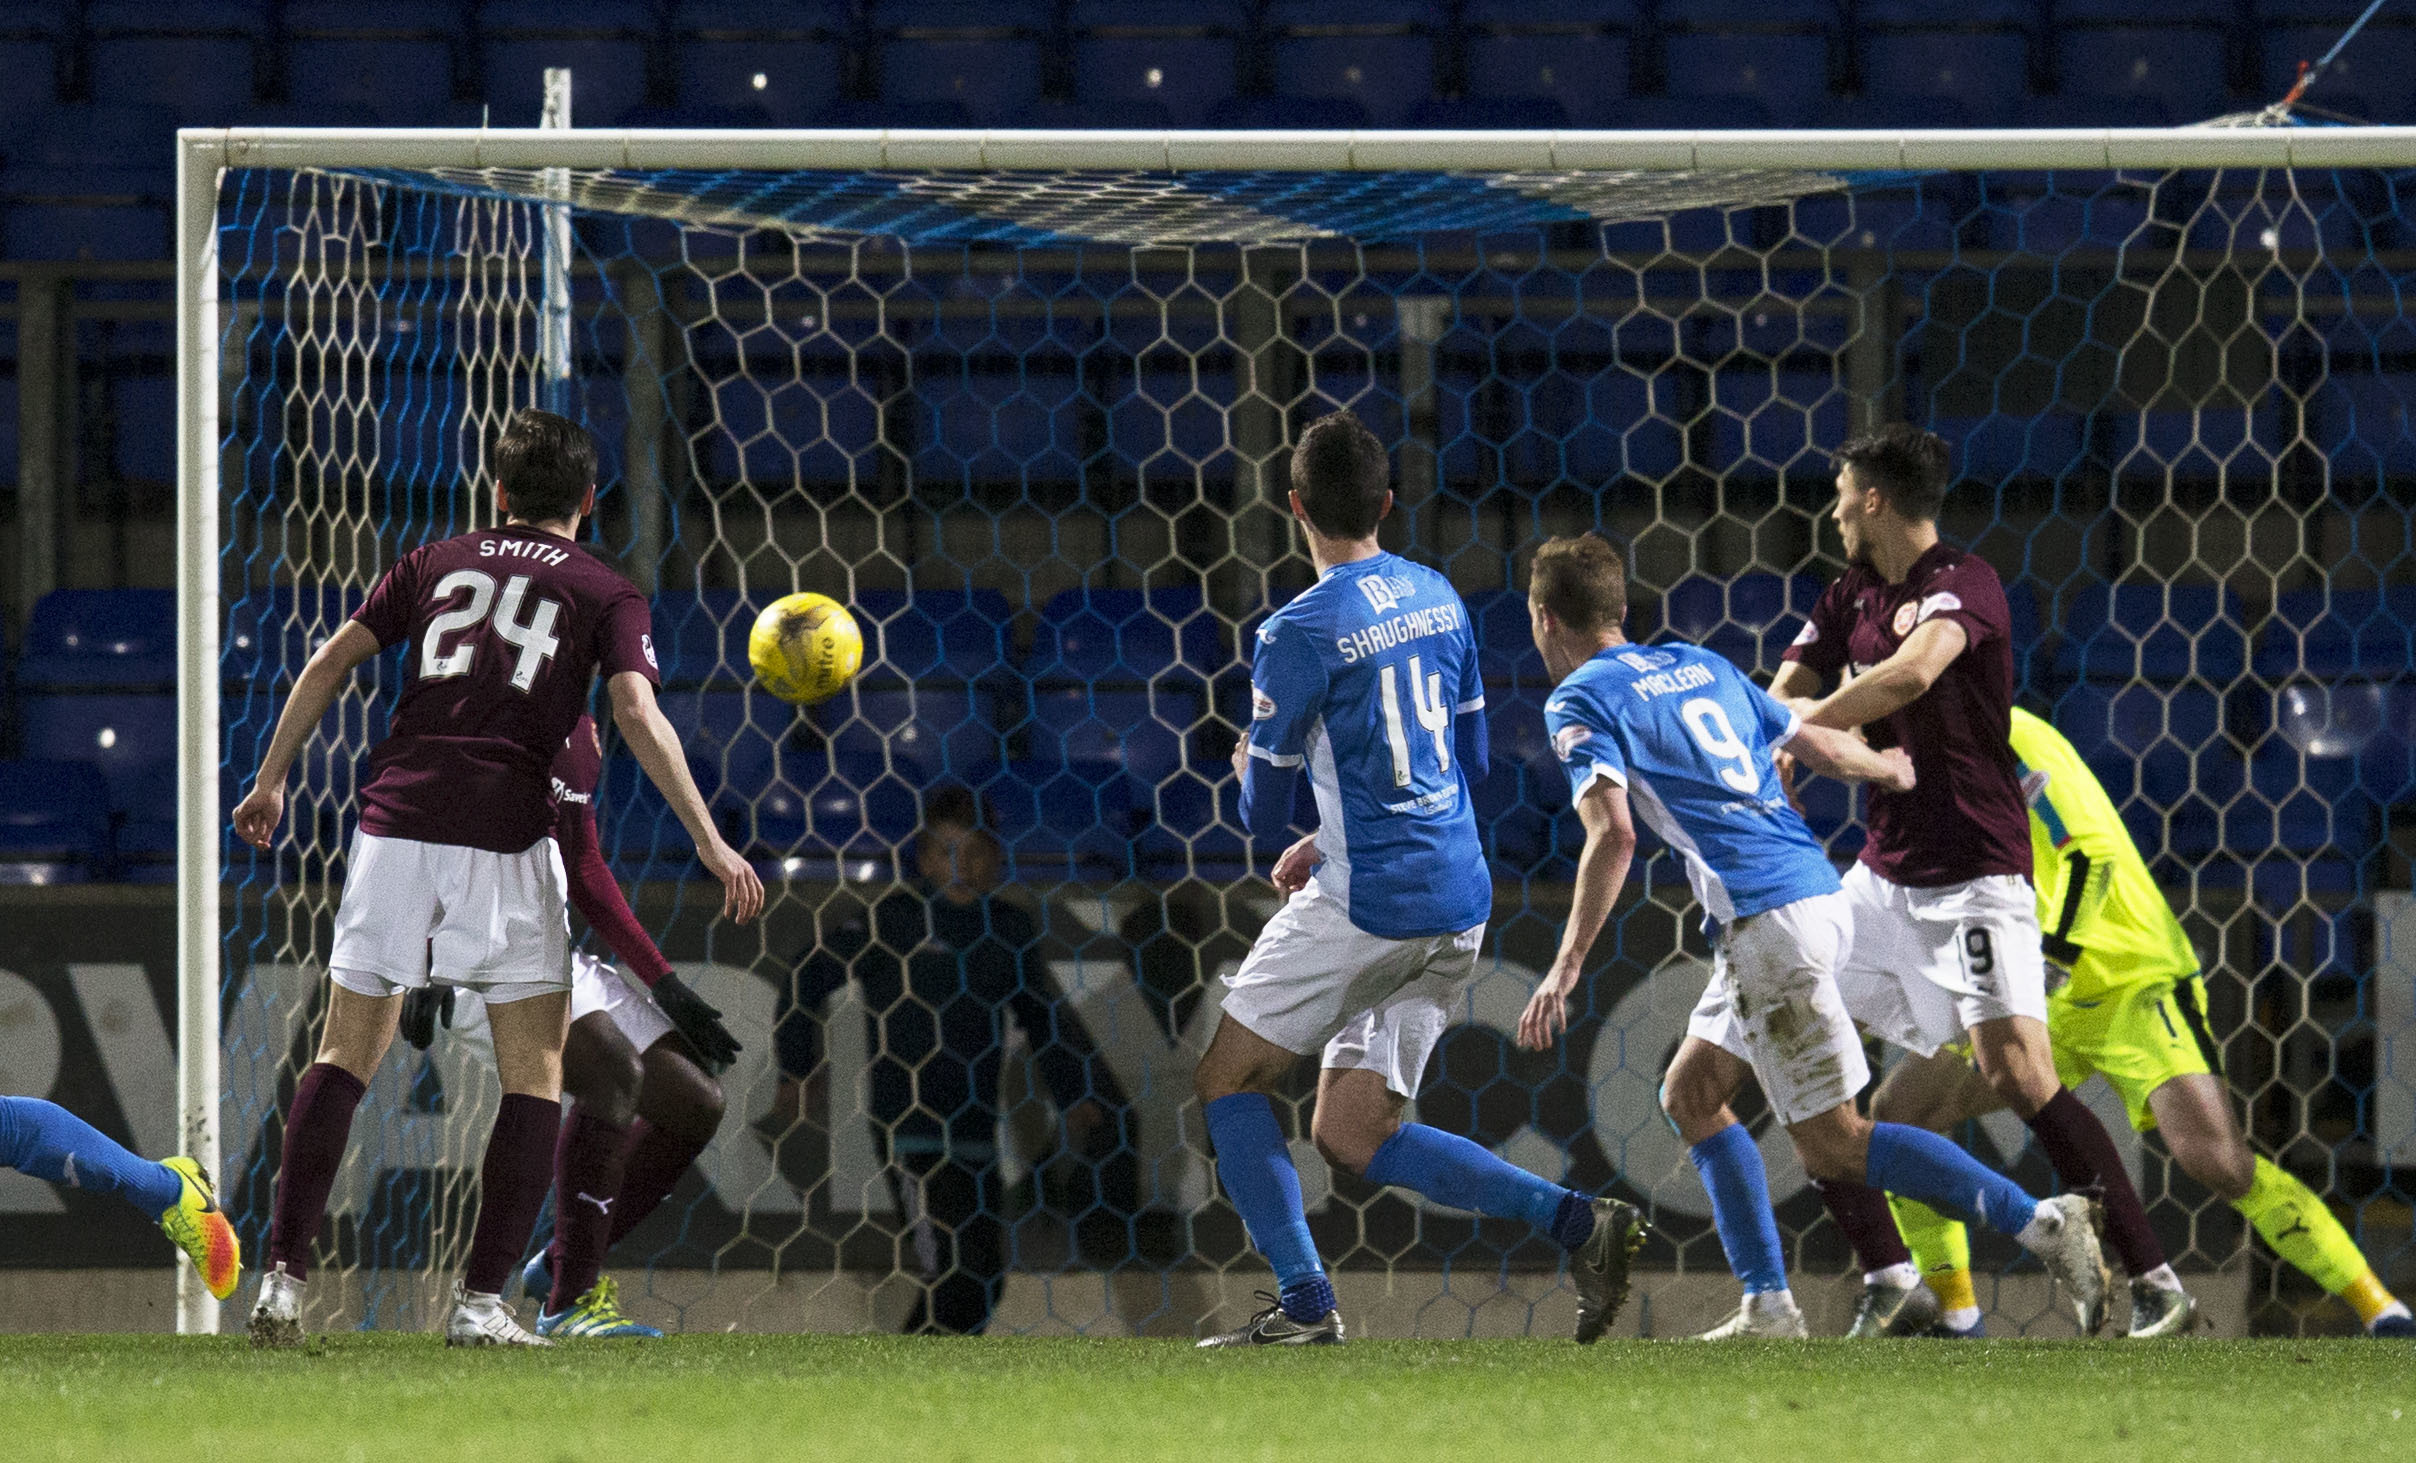 Joe Shaughnessy netting against Hearts.